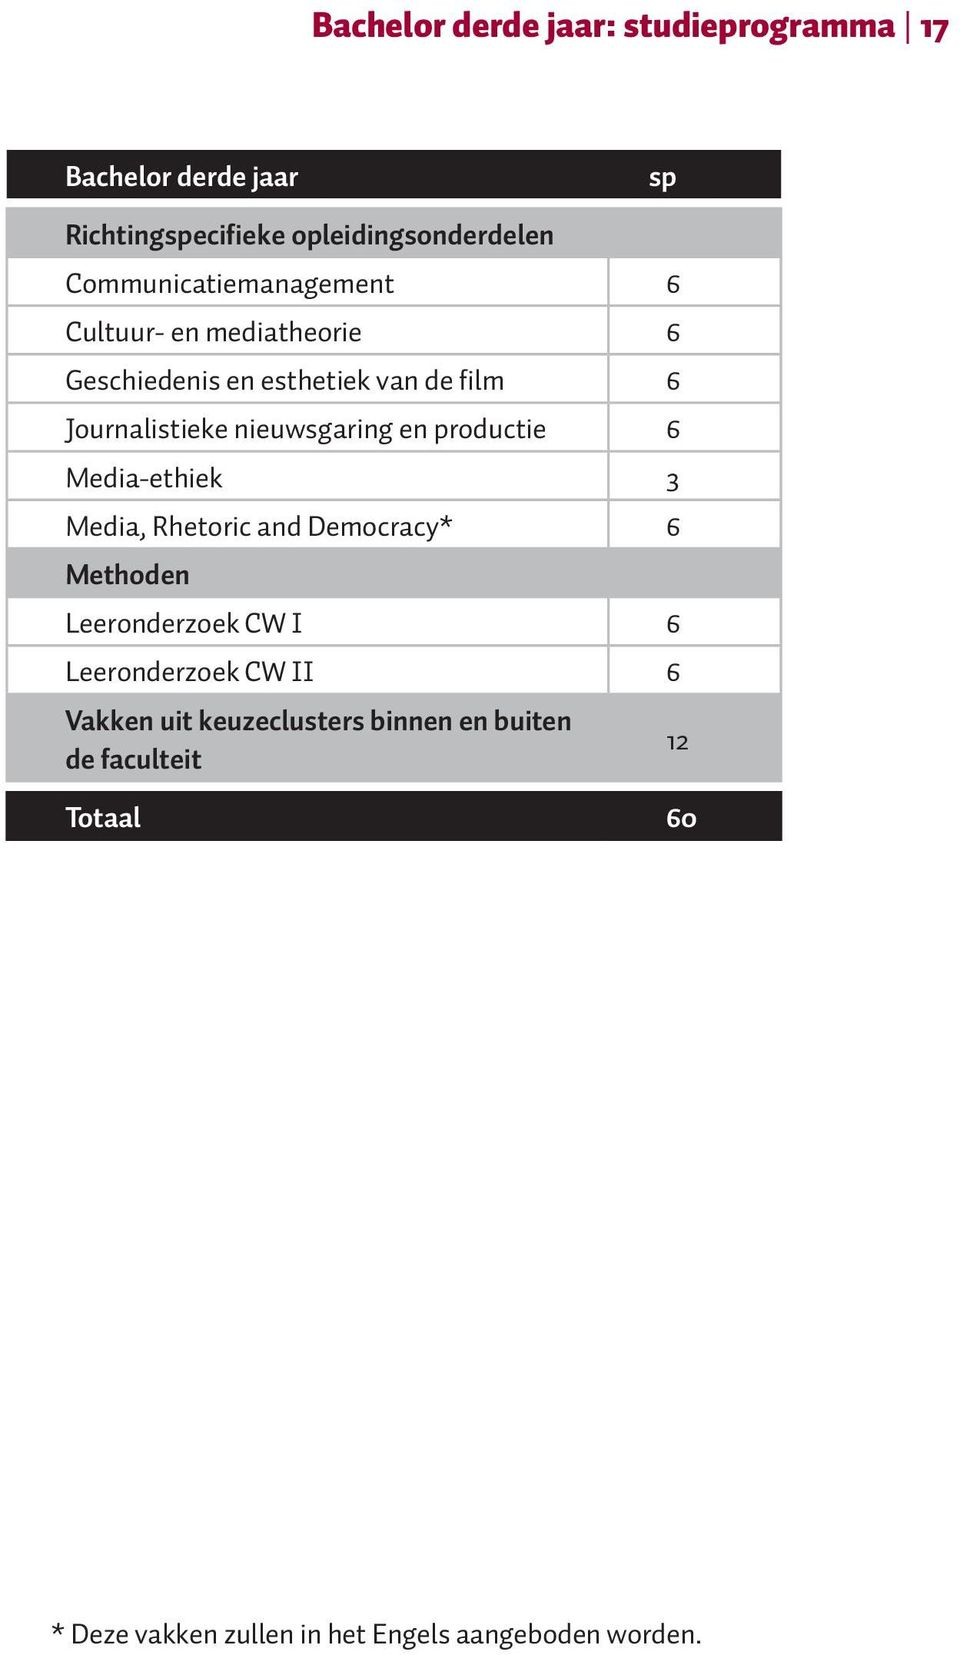 nieuwsgaring en productie 6 Media-ethiek 3 Media, Rhetoric and Democracy* 6 Methoden Leeronderzoek CW I 6